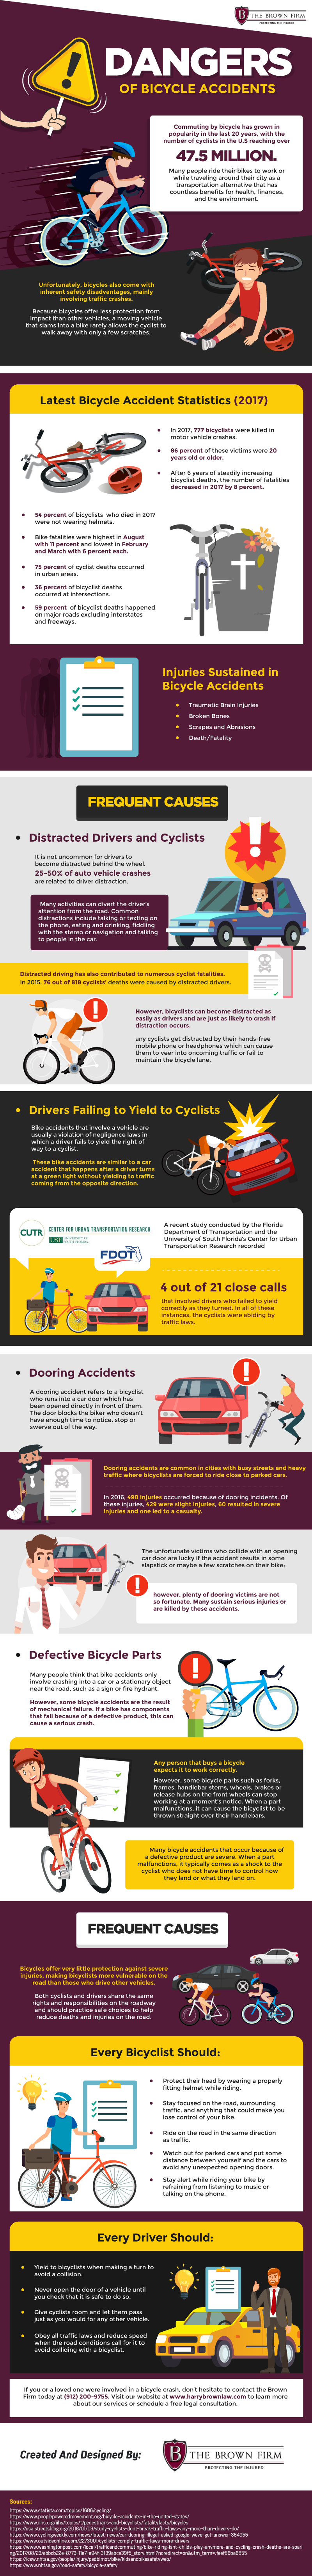 Dangers of Bicycle Accidents (Infographic) | The Brown Firm